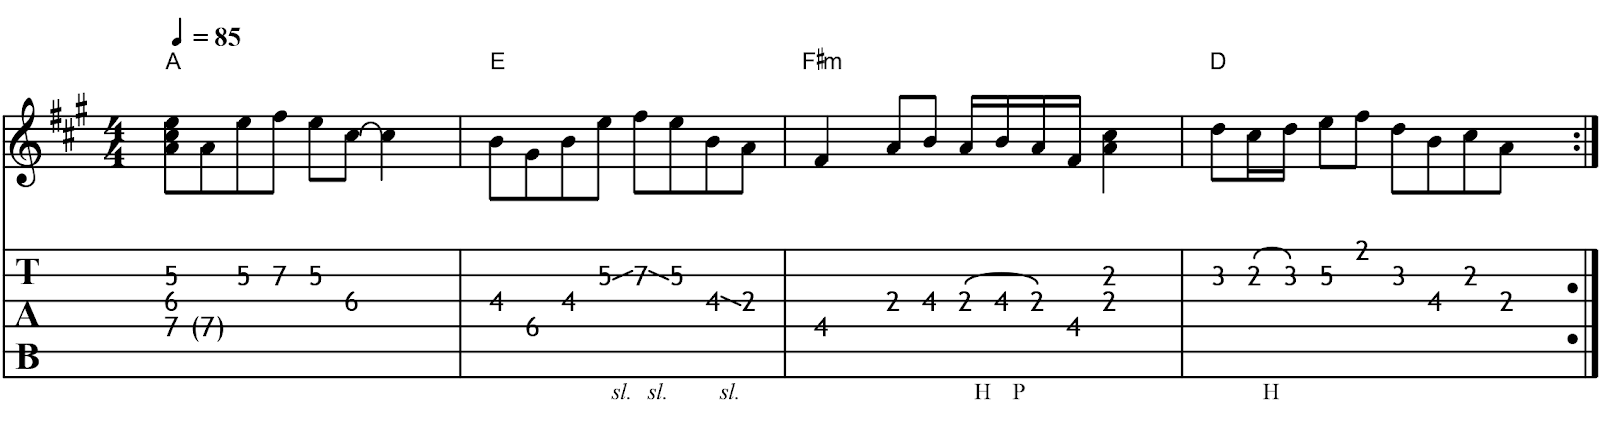 Badfish Guitar Chords Image Collections Basic Guitar Chords Finger